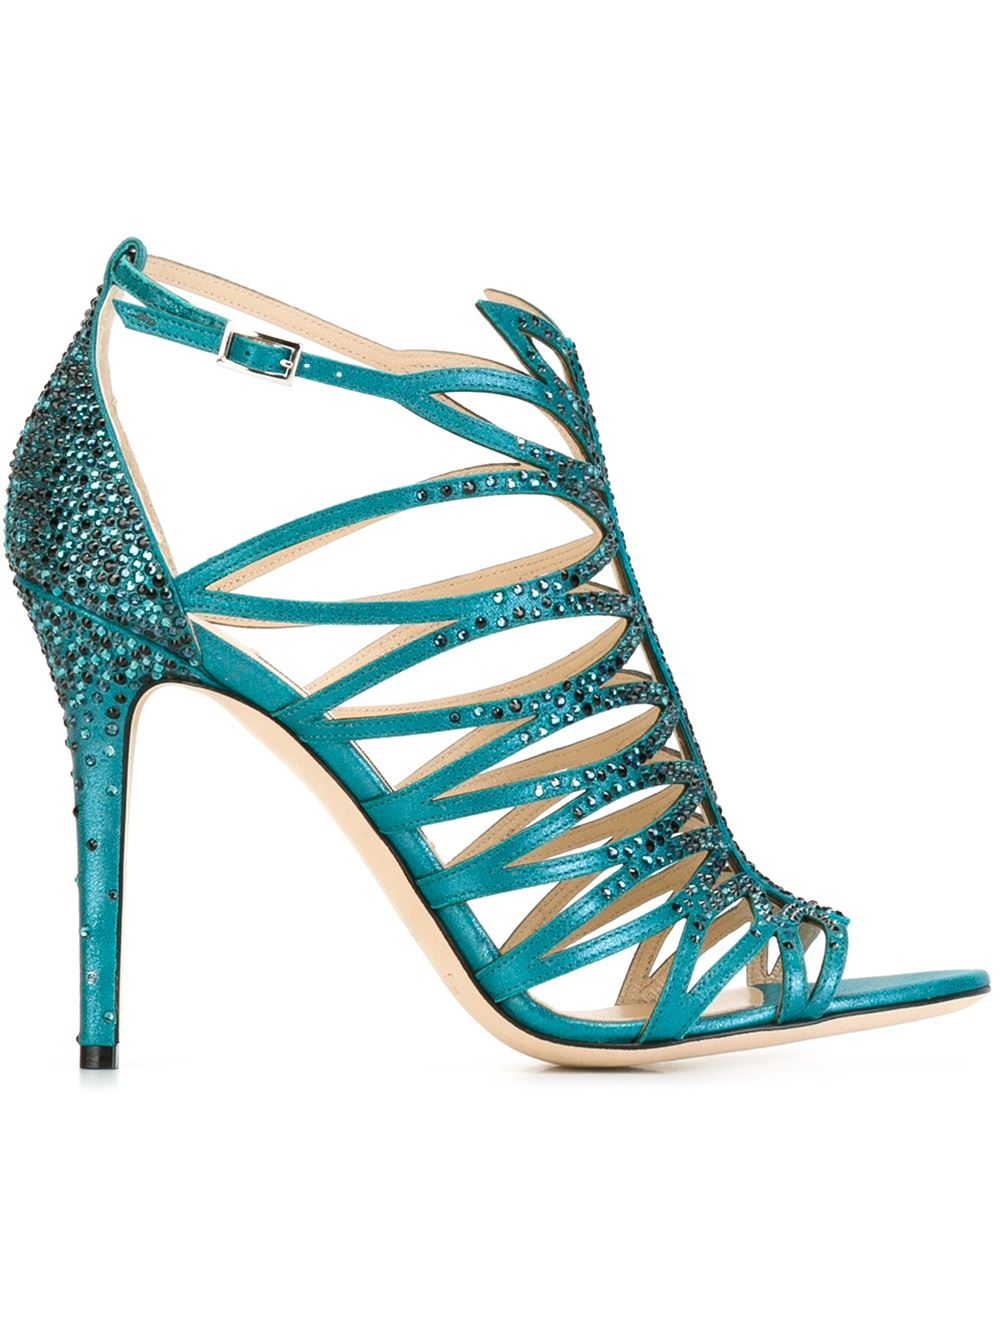 Jimmy Choo Kaye sandals, FarFetch.com